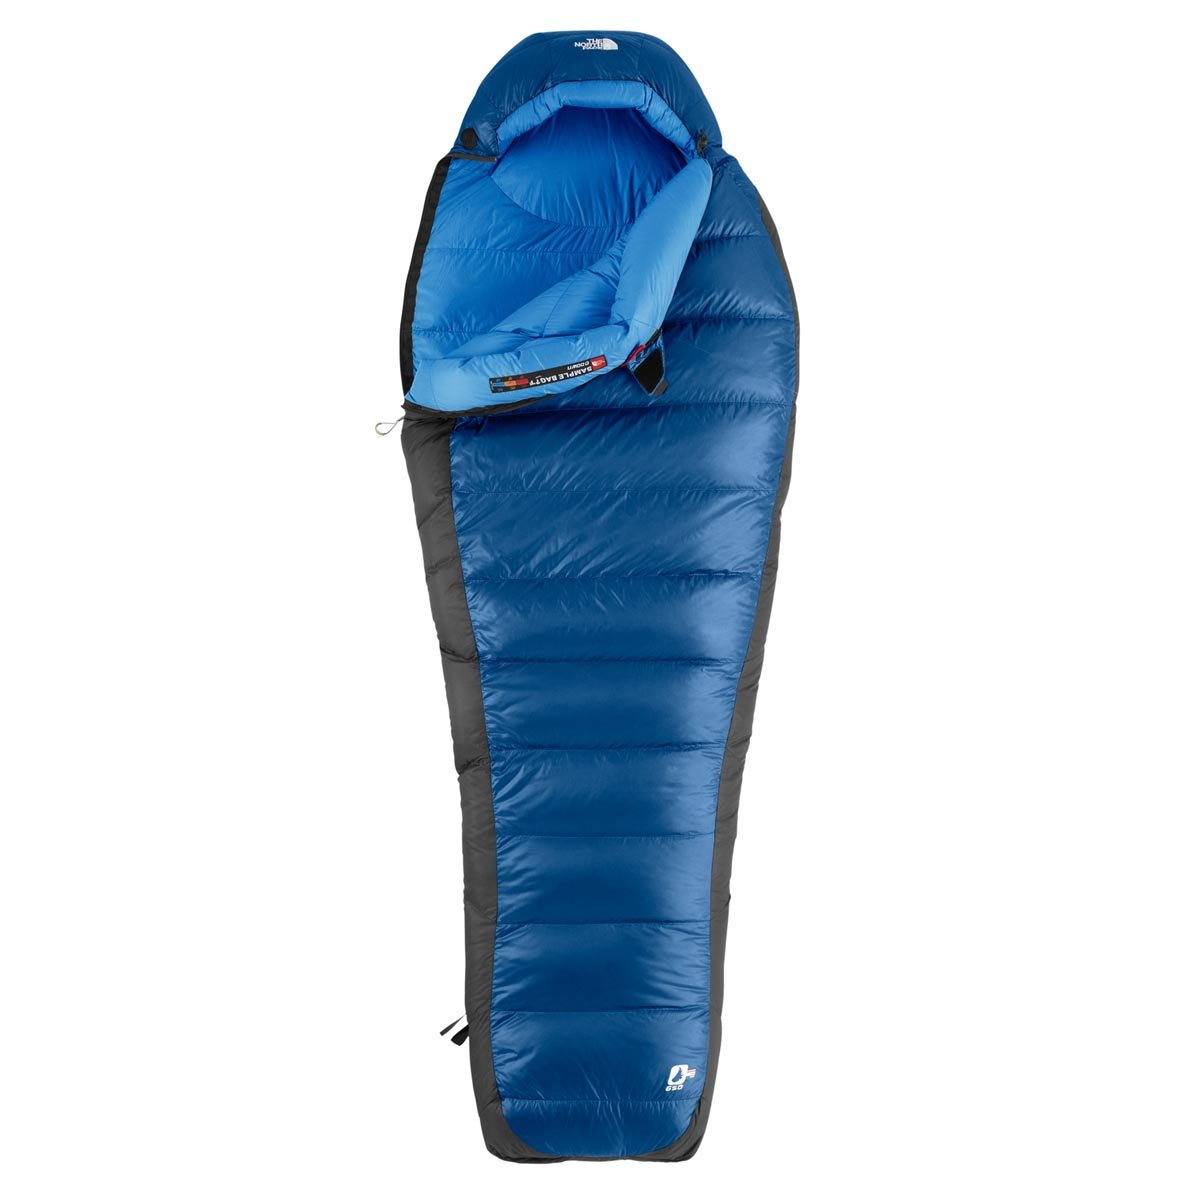 The North Face Schlafsack Kazoo Saco de Dormir, Unisex, Azul, Long: Amazon.es: Zapatos y complementos